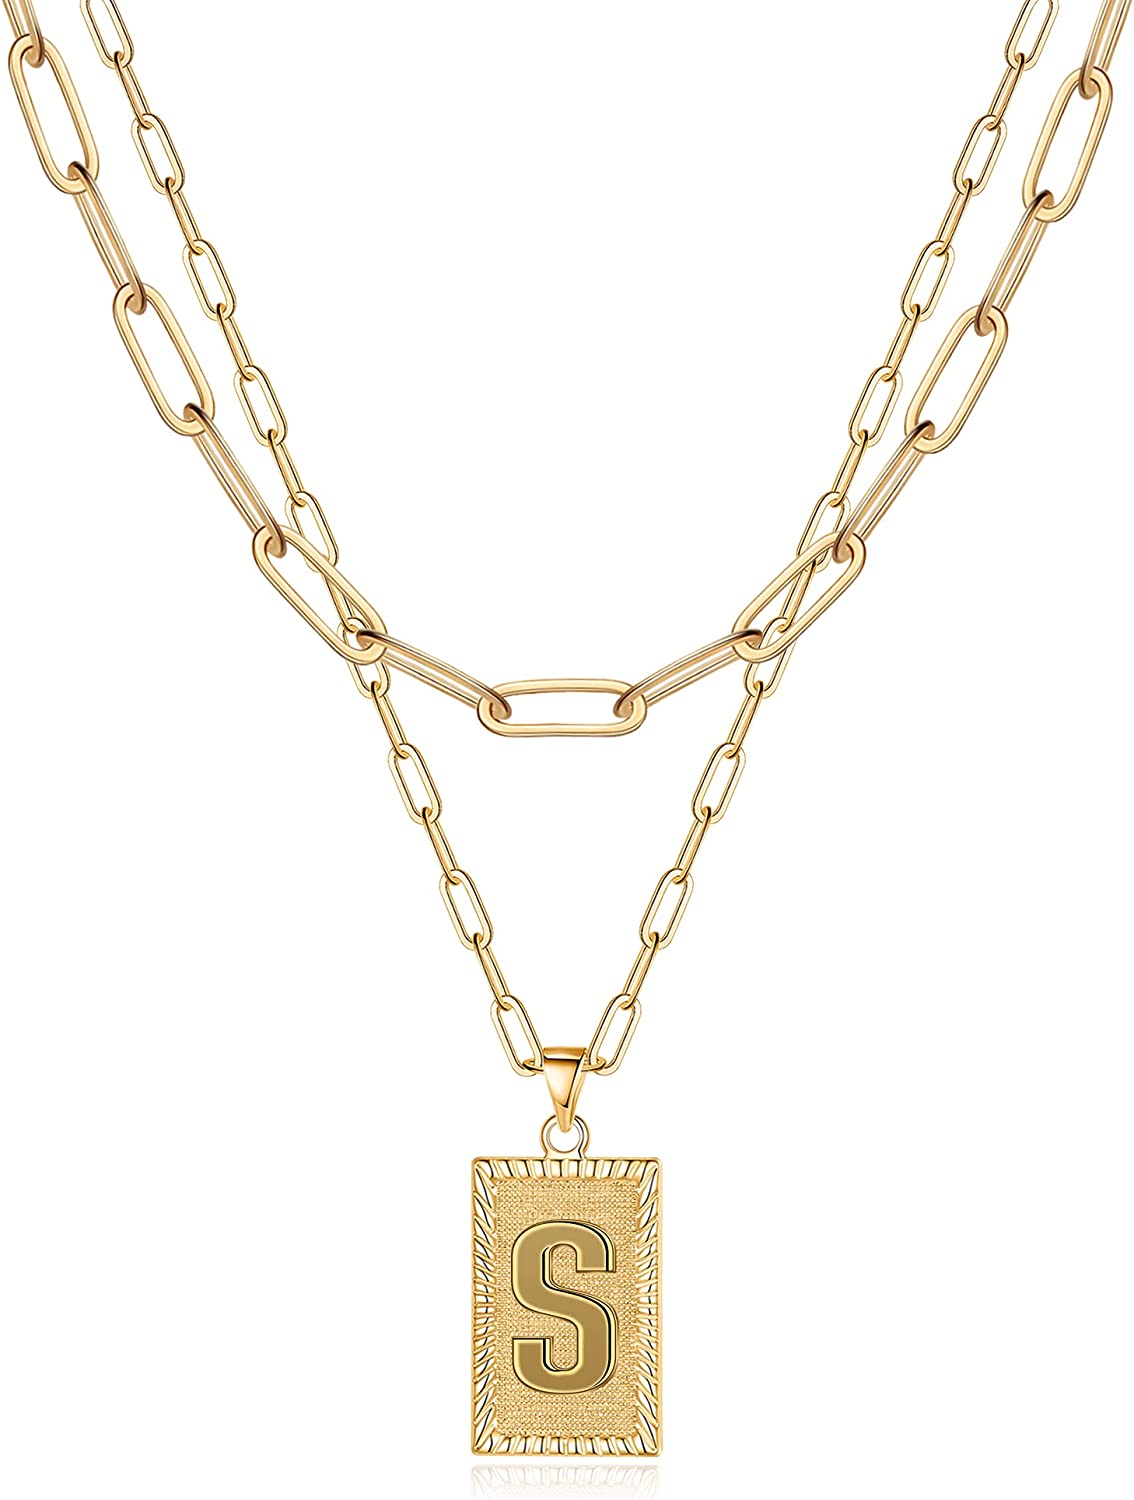 Layered Gold Initial Necklaces for Women, 14K Gold Plated Layering Paperclip Chain Necklace Square Capital Letter Pendant Initial Choker Necklace Gold Layered Necklaces for Women Jewelry Gifts